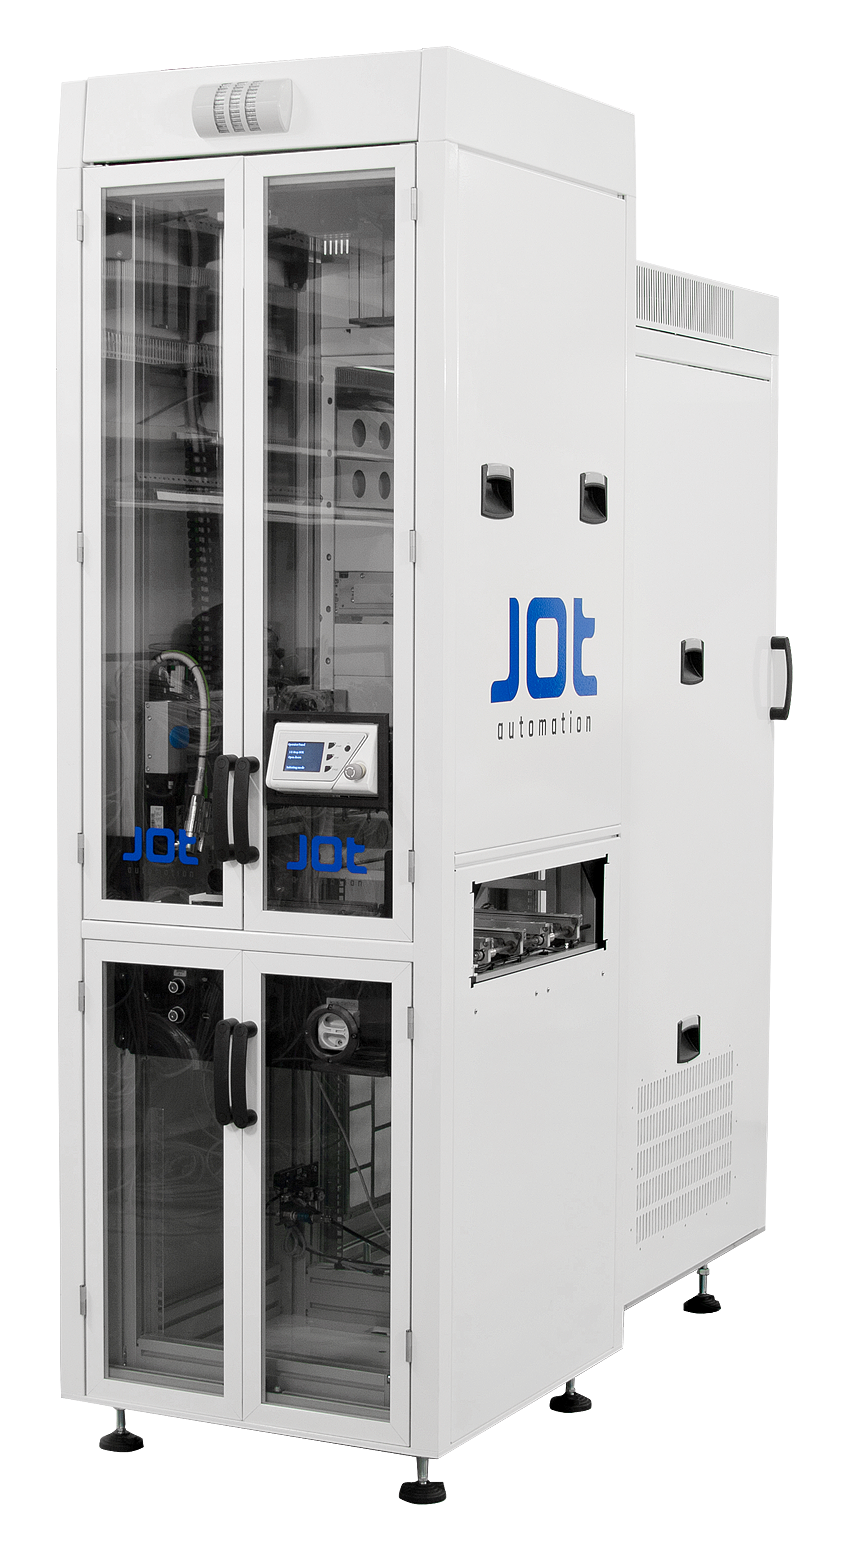 JOT Automation Makes a SMART Move with its Newest Test Device Solutions at the Mobile World Congress